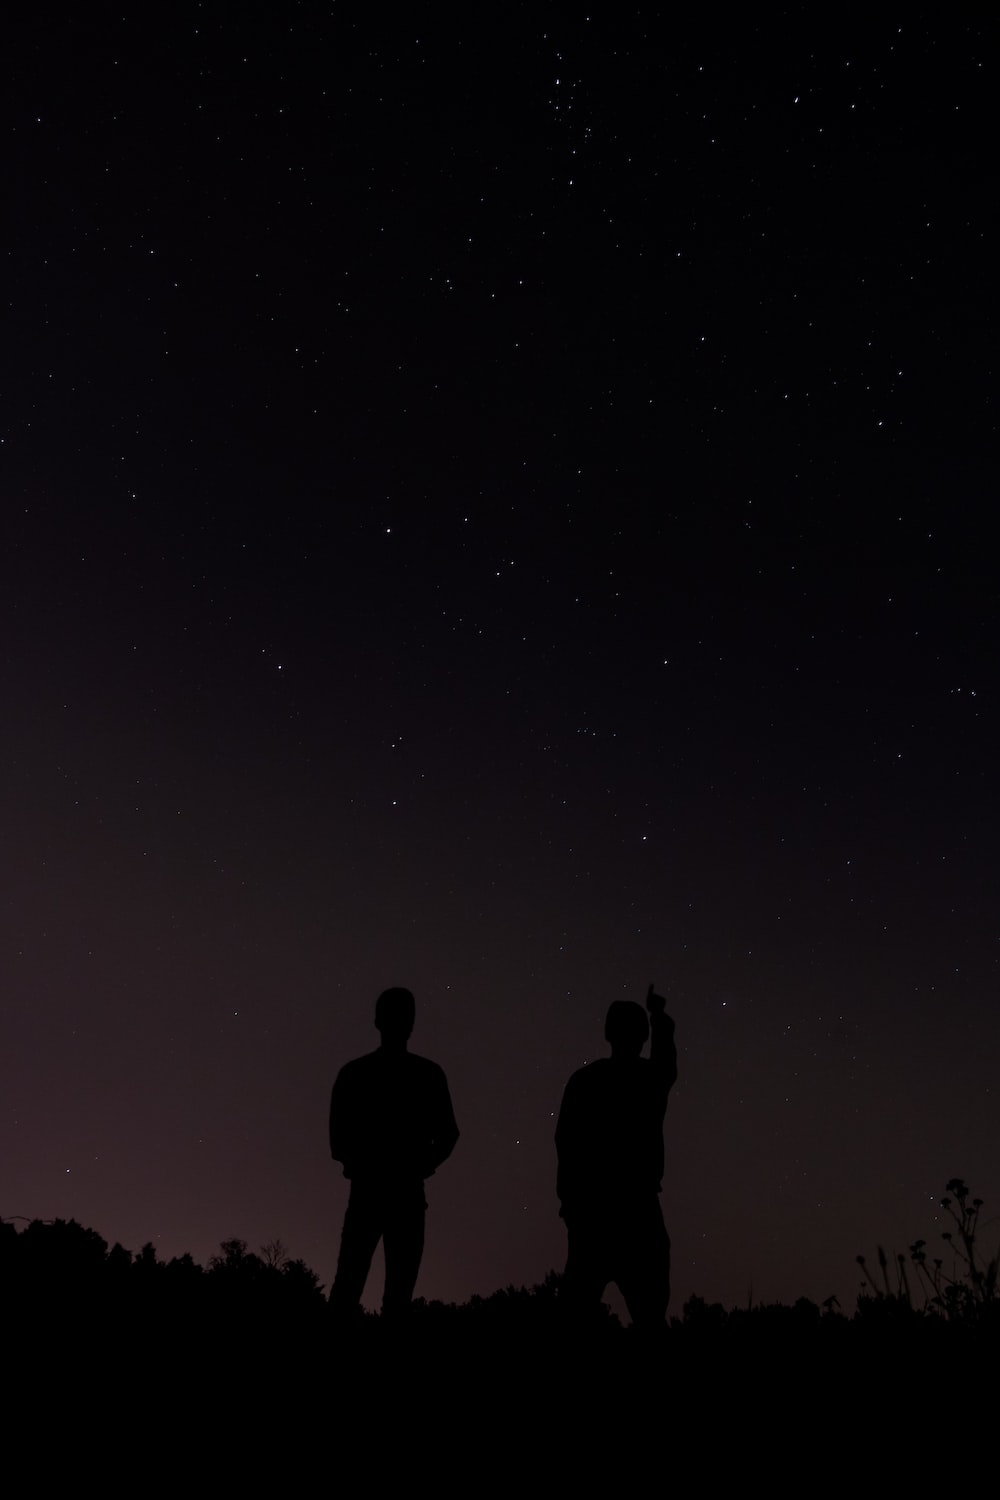 silhouette photography of two people during daytime